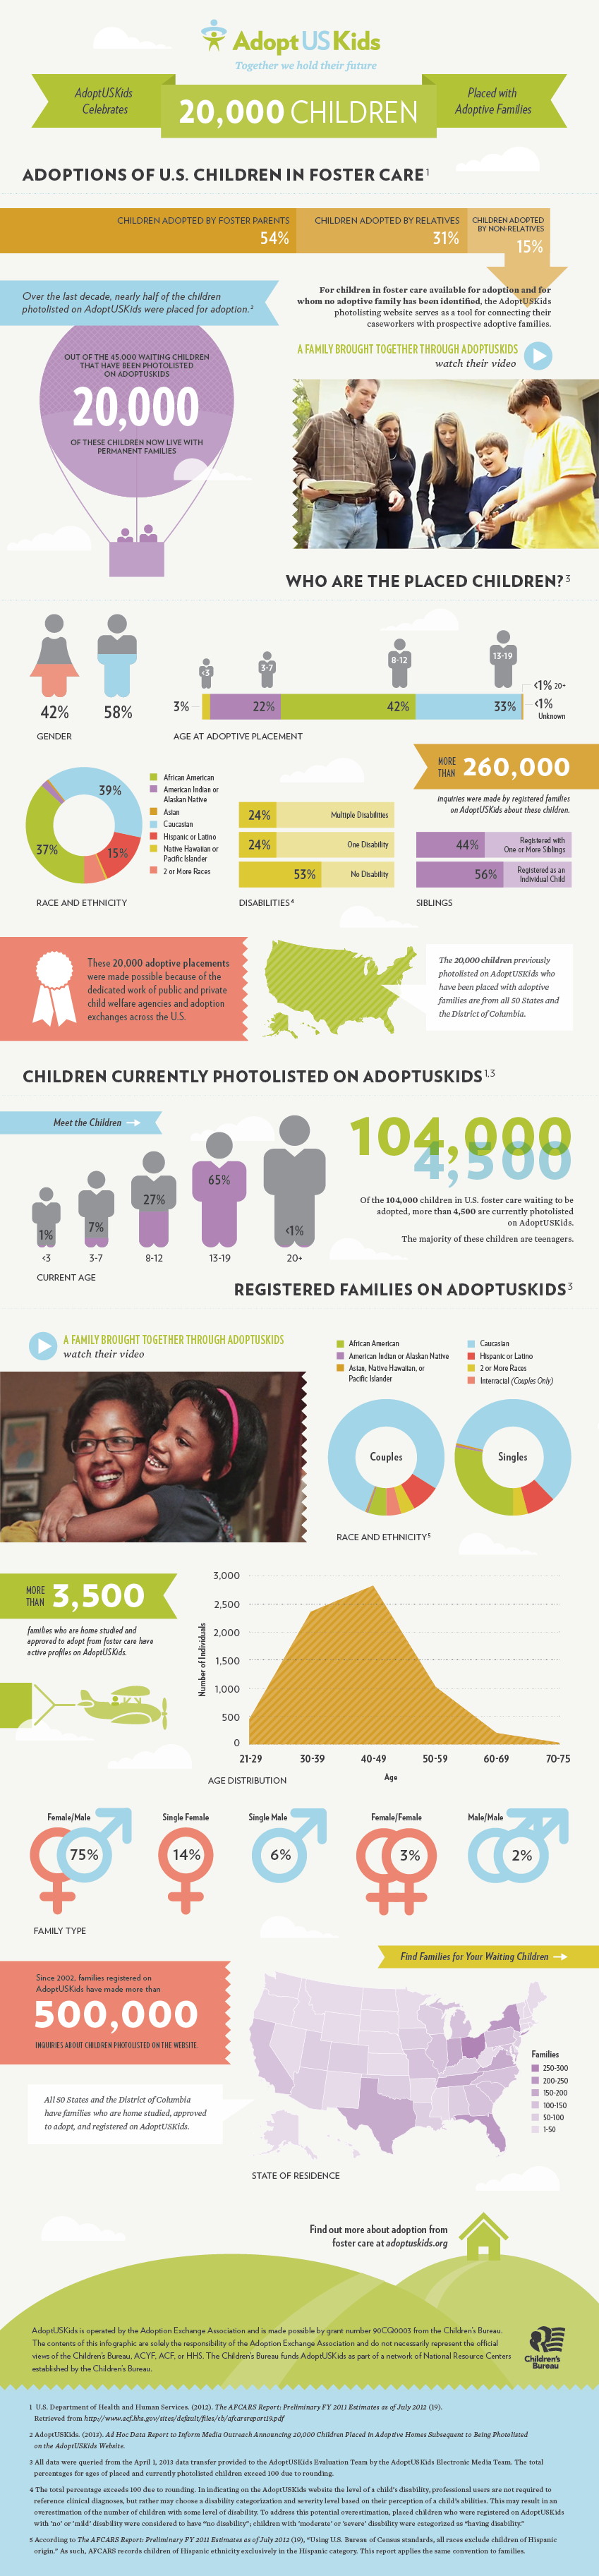 Adoption Rates for Children in the US